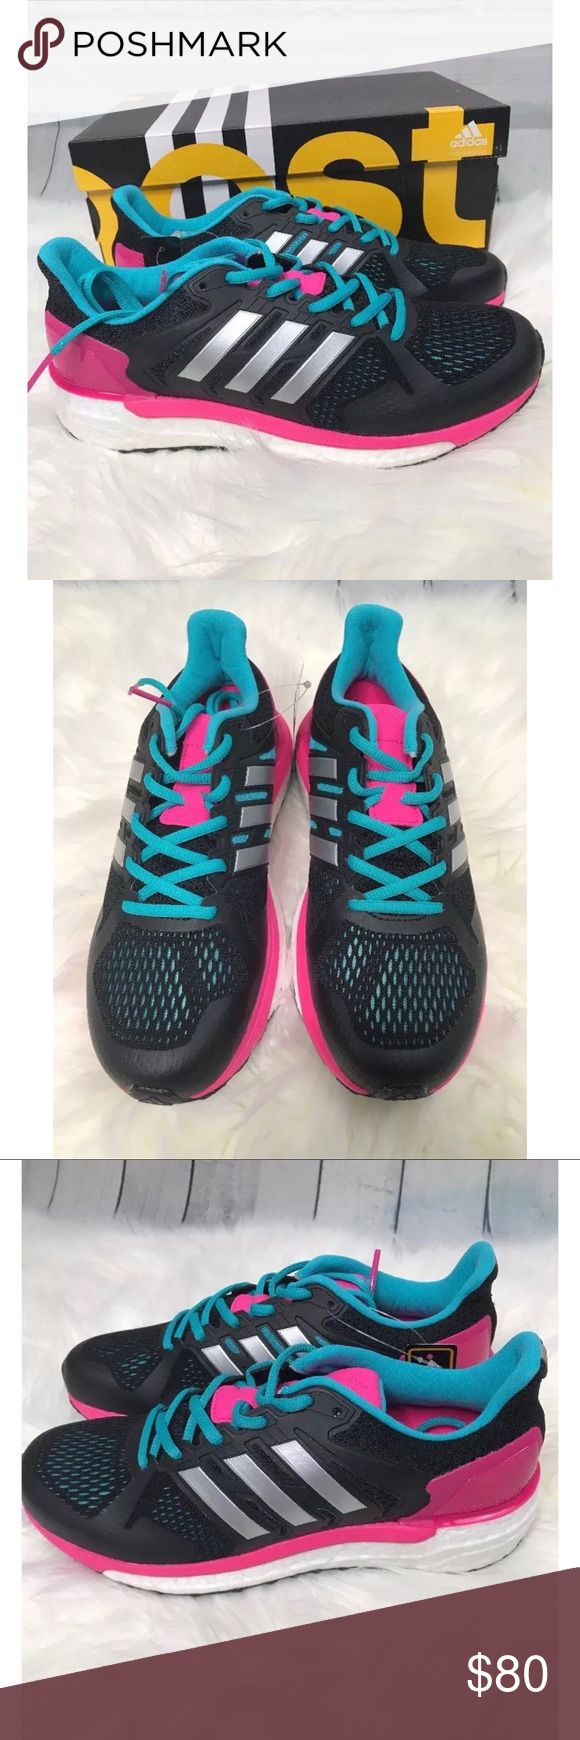 New adidas Supernova ST Running Sneaker New adidas Supernova ST Running Sneaker   Pink Black Blue   Woman's Size 7.5   Details  - Round toe with bumper   - Mesh construction  - Lace-up style  - Side stripe details  - Contrasting trim   Thanks for Looking! adidas Shoes Sneakers